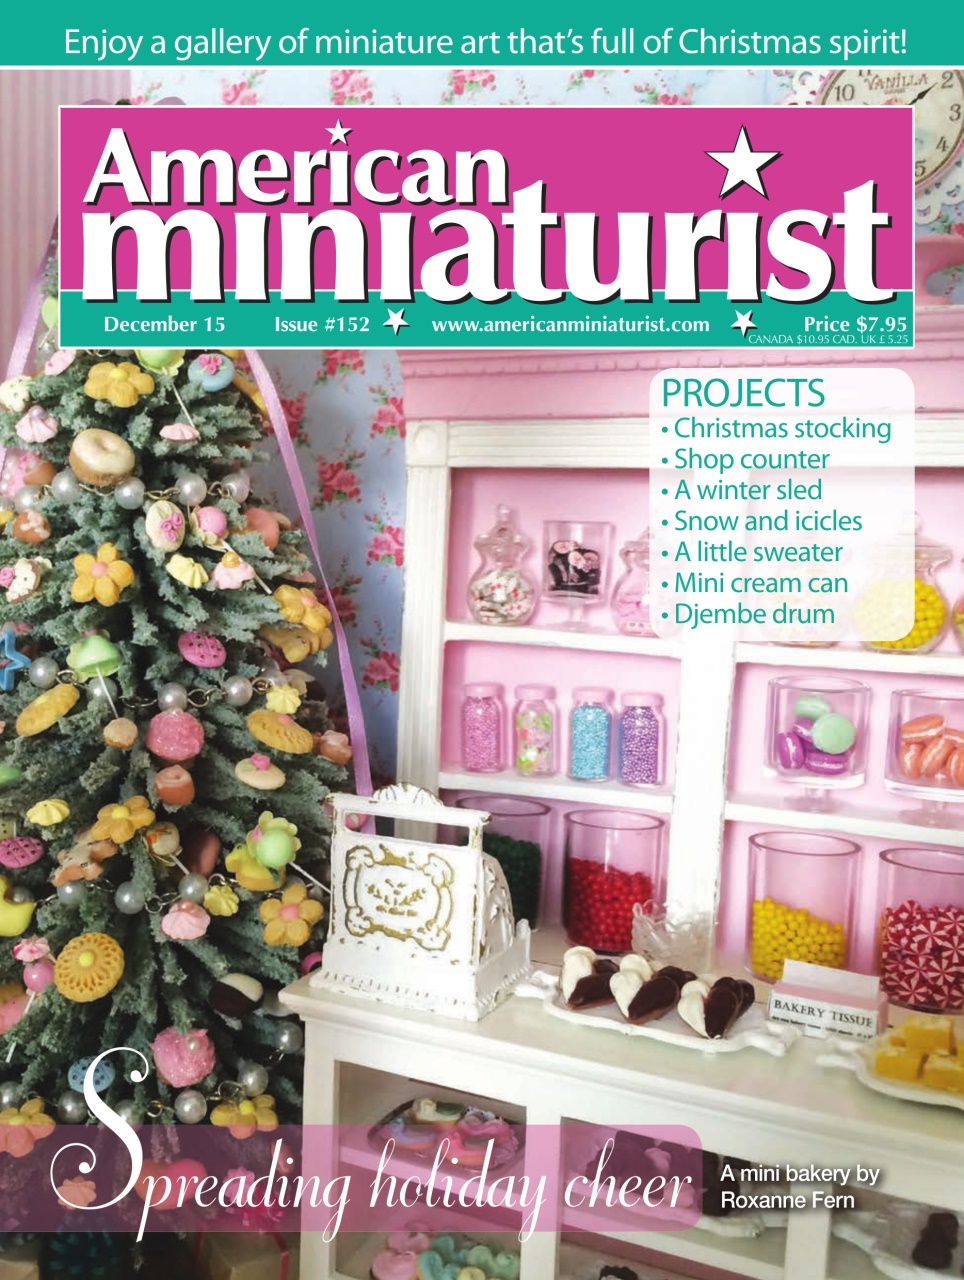 American Miniaturist Magazine December 2015 Issue #152